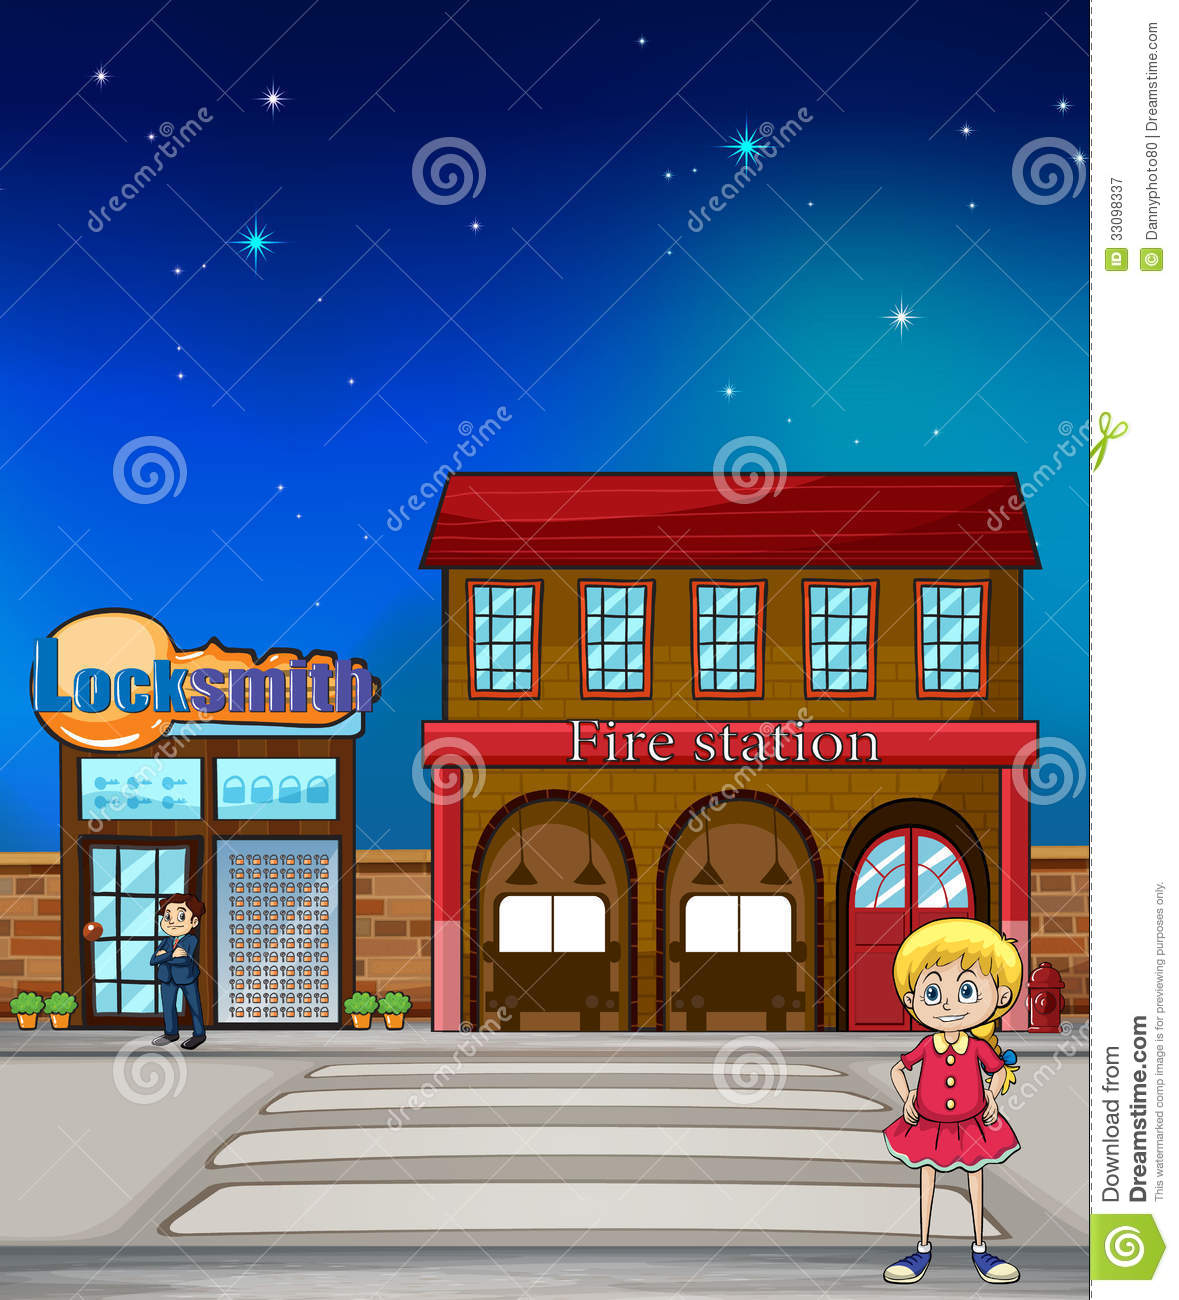 hight resolution of illustration of a kid standing before a locksmith and fire station